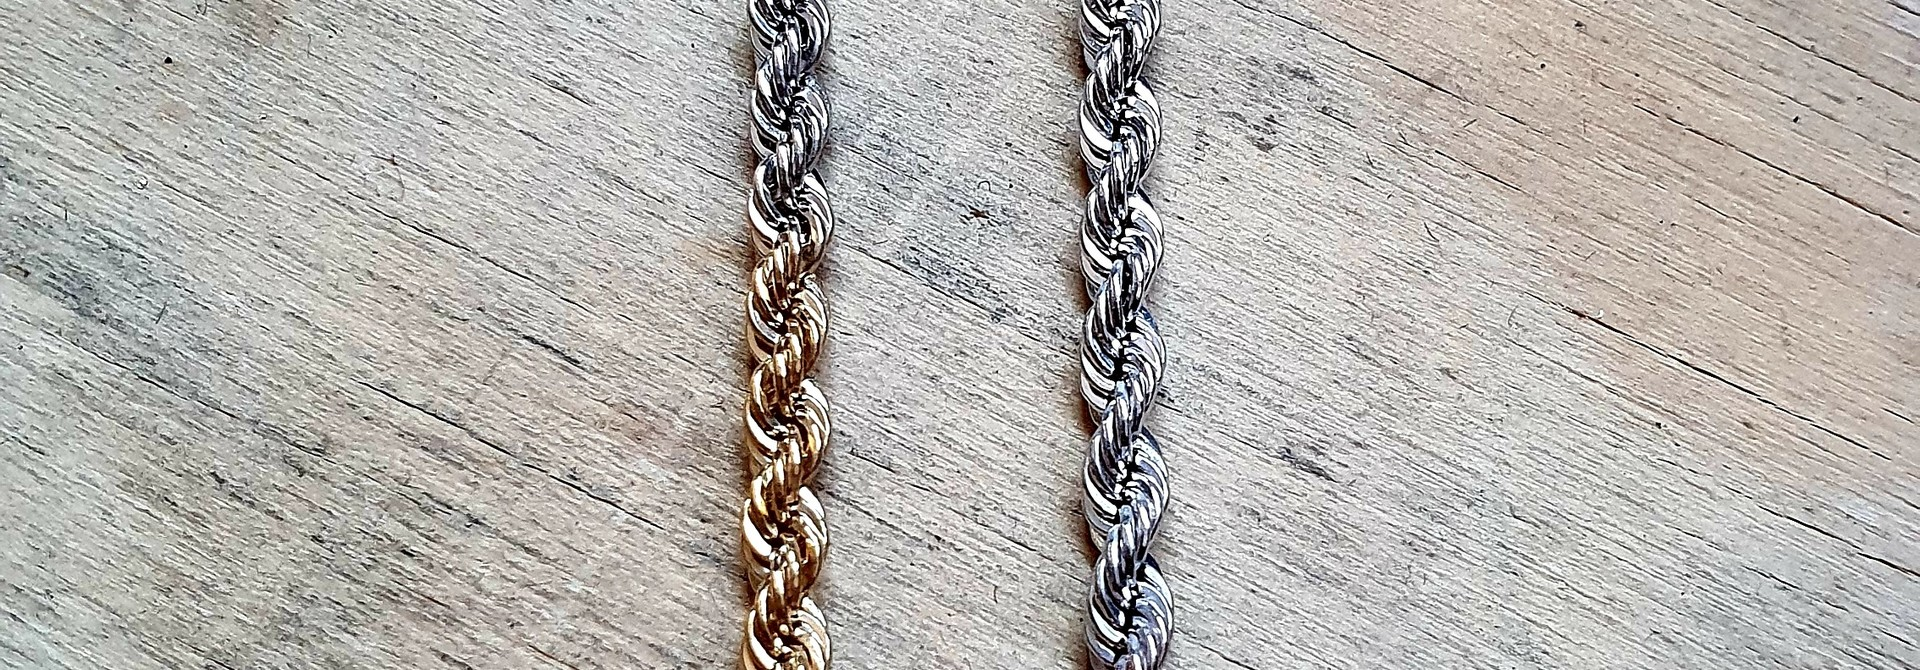 Rope chain tricolor 14 kt 4.5mm